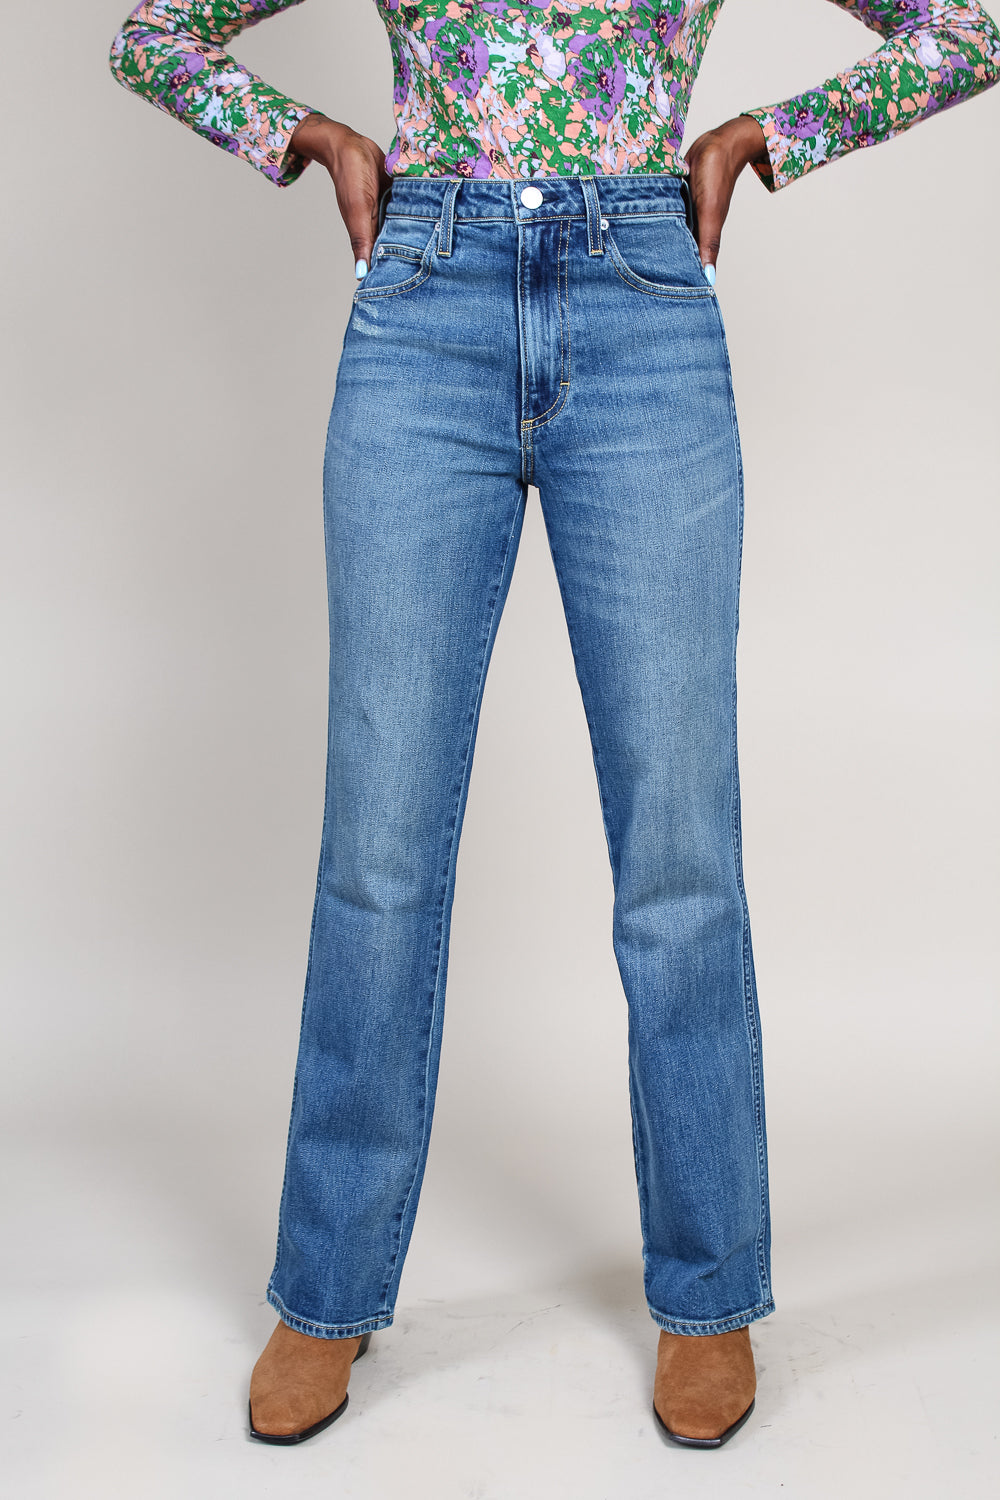 High Rise Kick Flare Jean in Stargazer